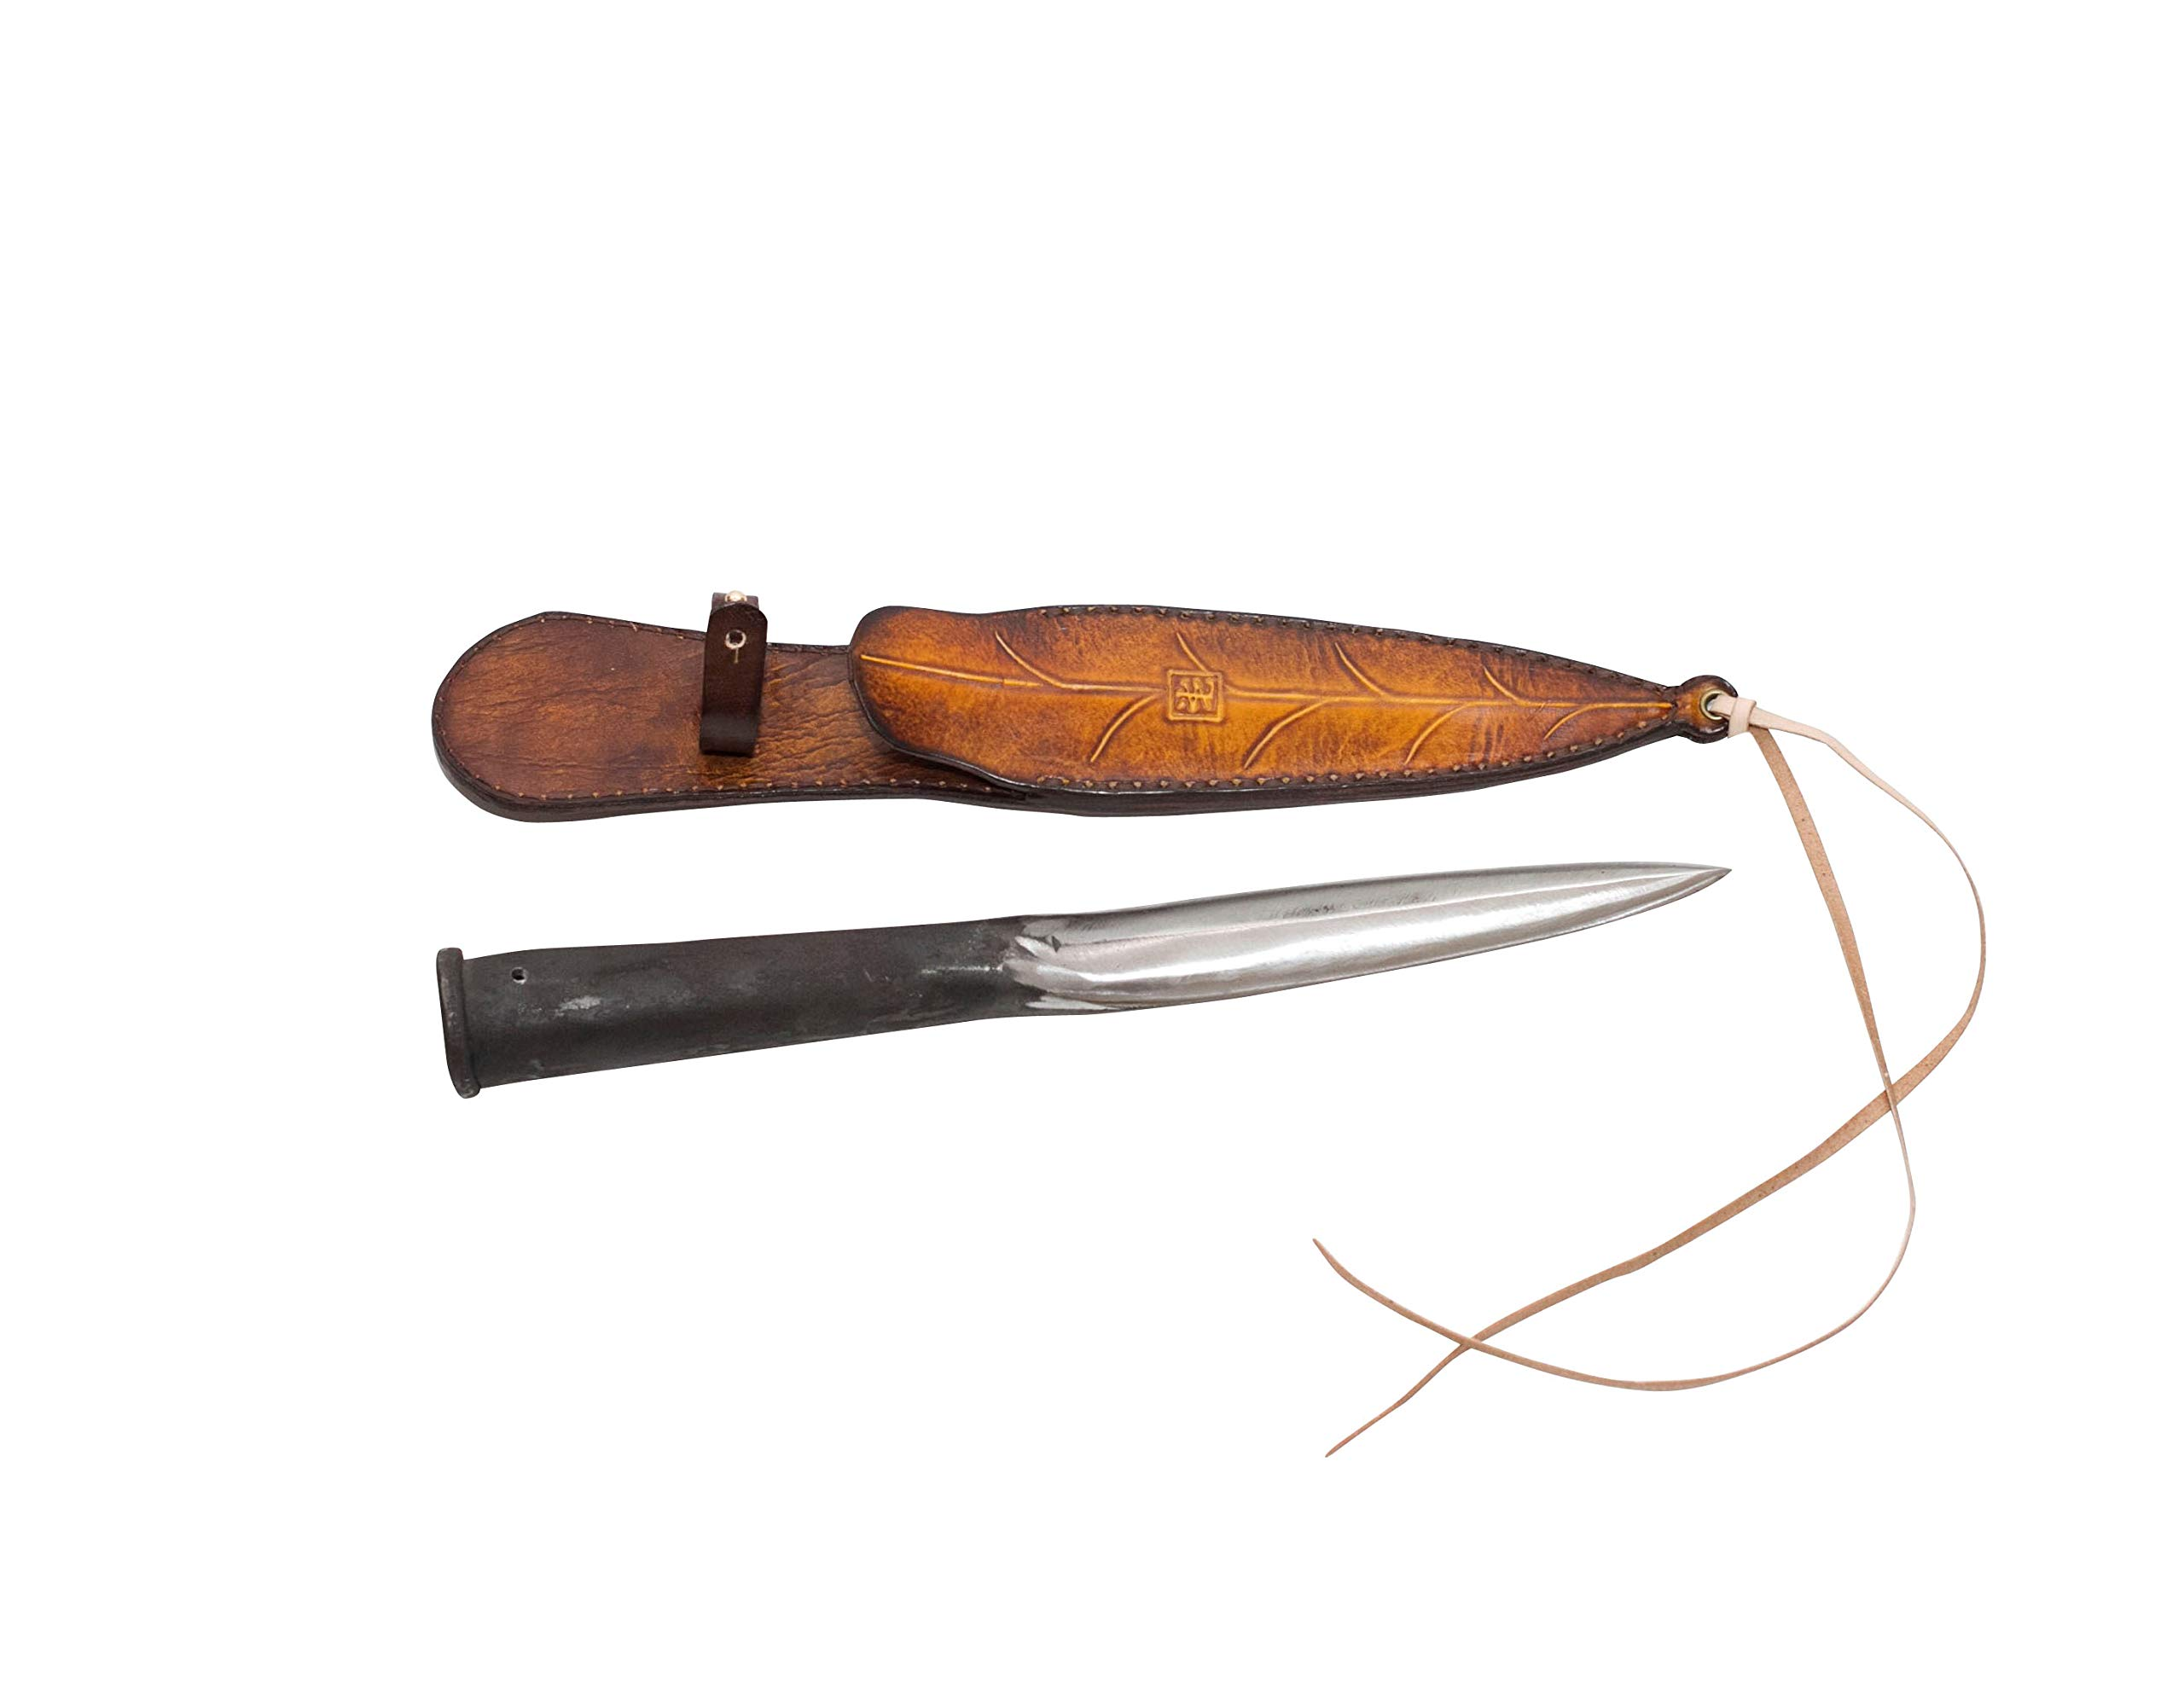 DH corp - Spear Head, Hand Forged Hunting Knife, Premium Fighting Knife, Durable Trench Knife and Short Sword with…